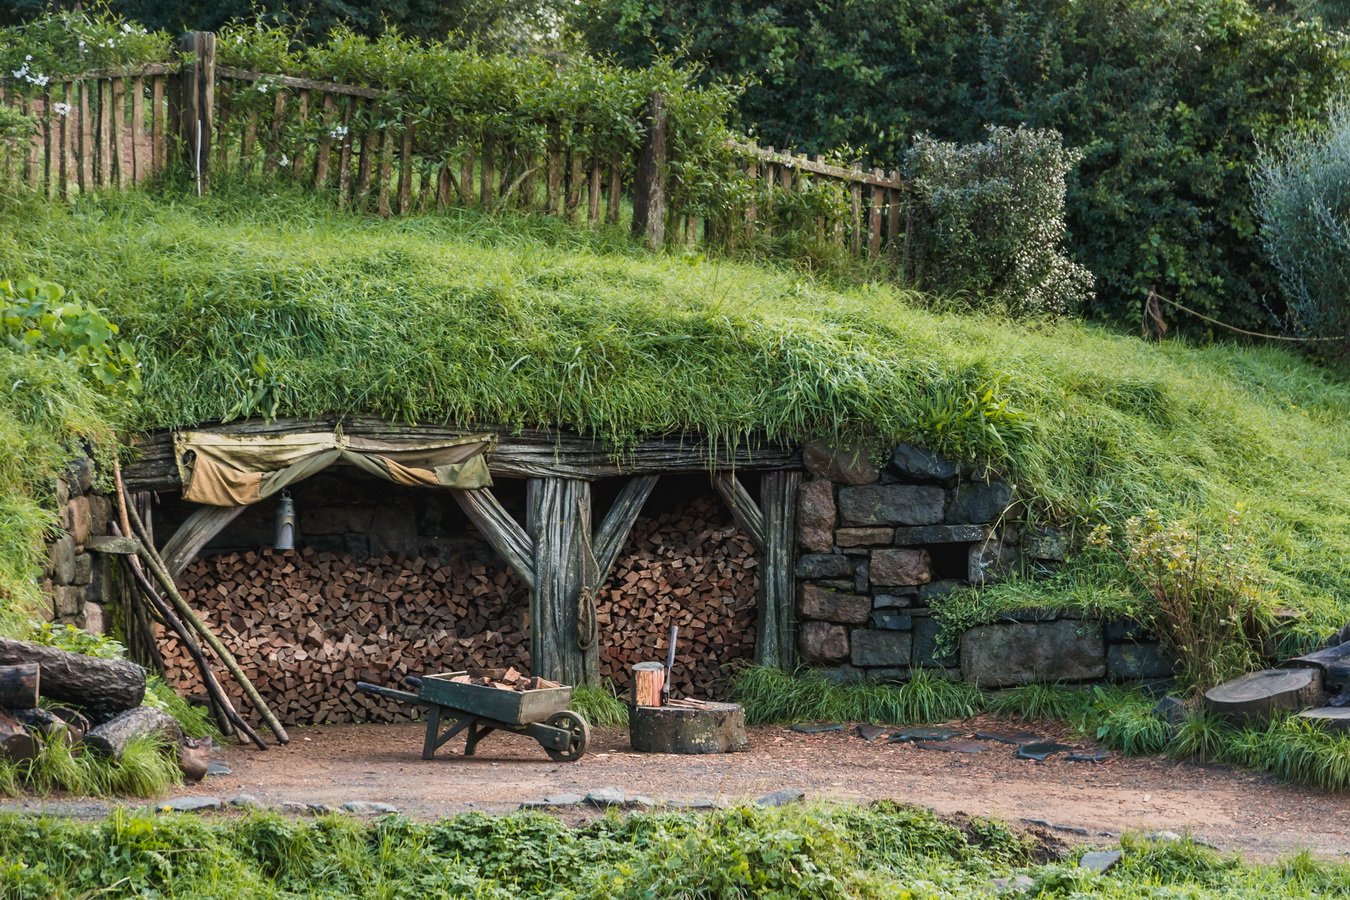 Lumberjack,The Hobbiton, The Shire,Хоббитшир, Удел, Хоббитания, Заселье, Край,Matamata, North Island ,New Zealand